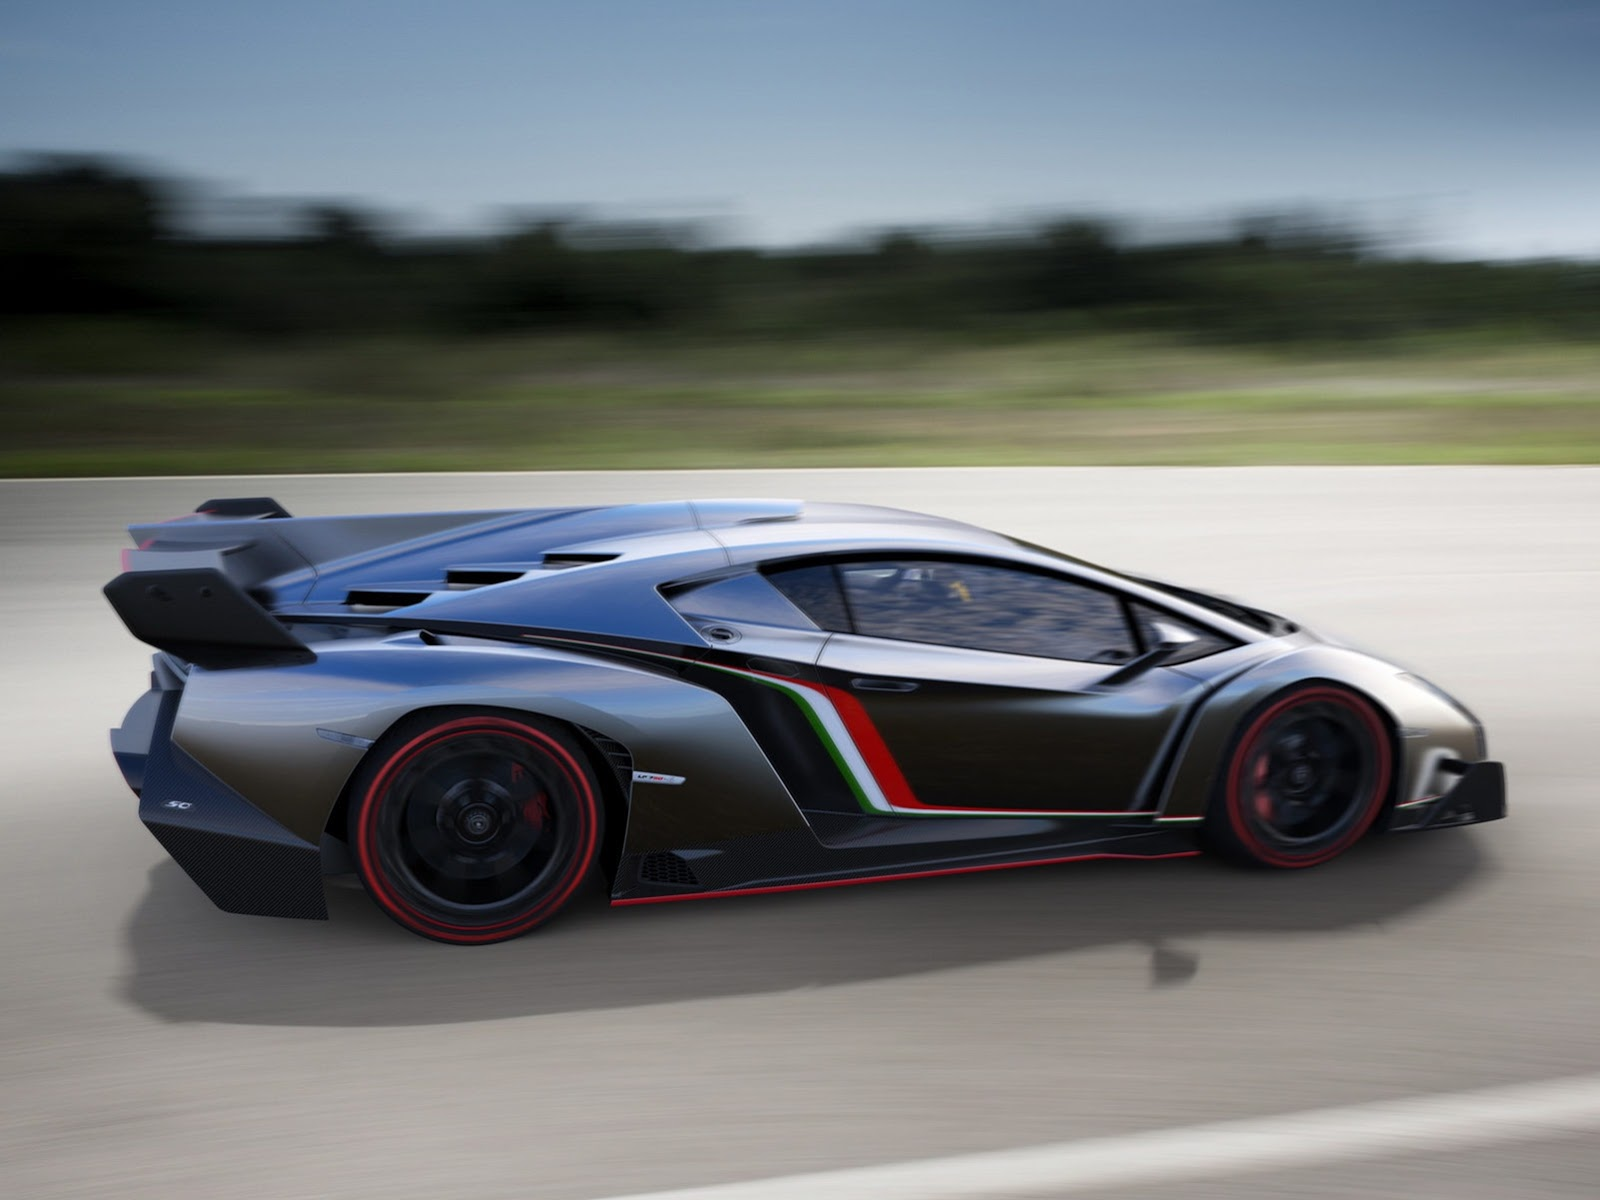 The Veneno Is Named After A Legendary Fighting Bull Whose Reputation Was  Built On The Fact That It Was One Of The Strongest And Most Aggressive In  History.